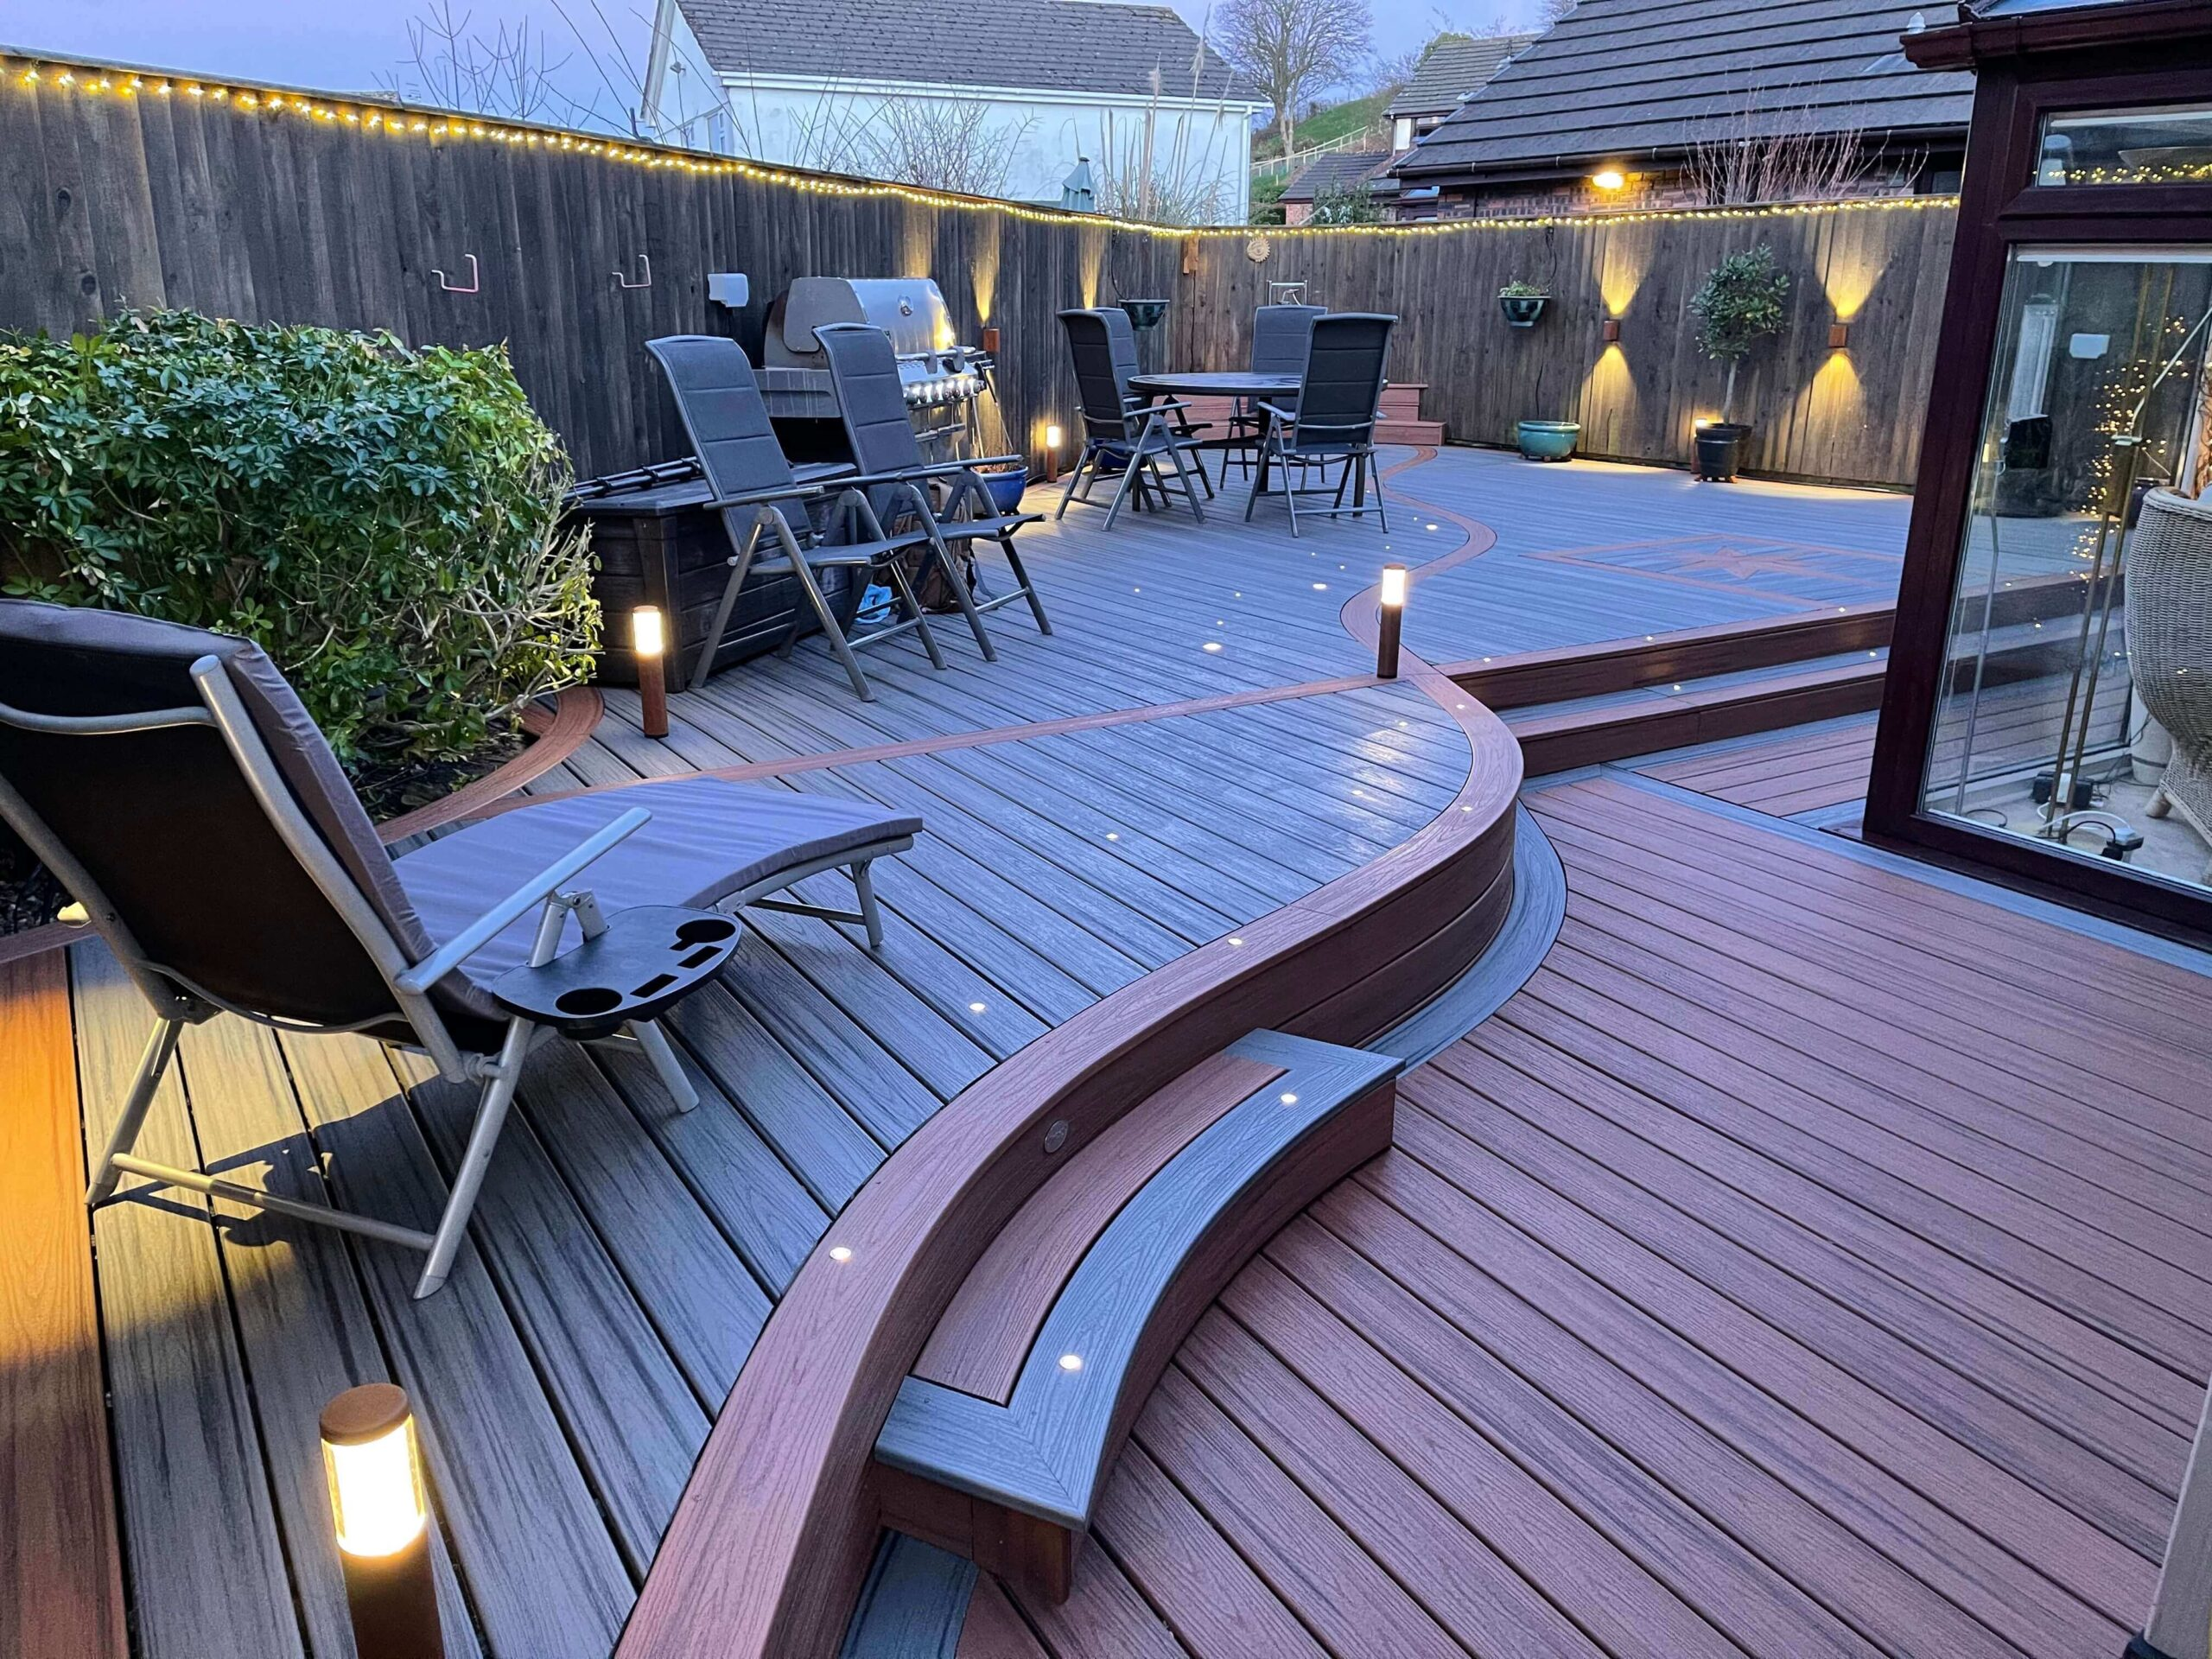 Why Choose Composite Decking for Your Outdoor Space?